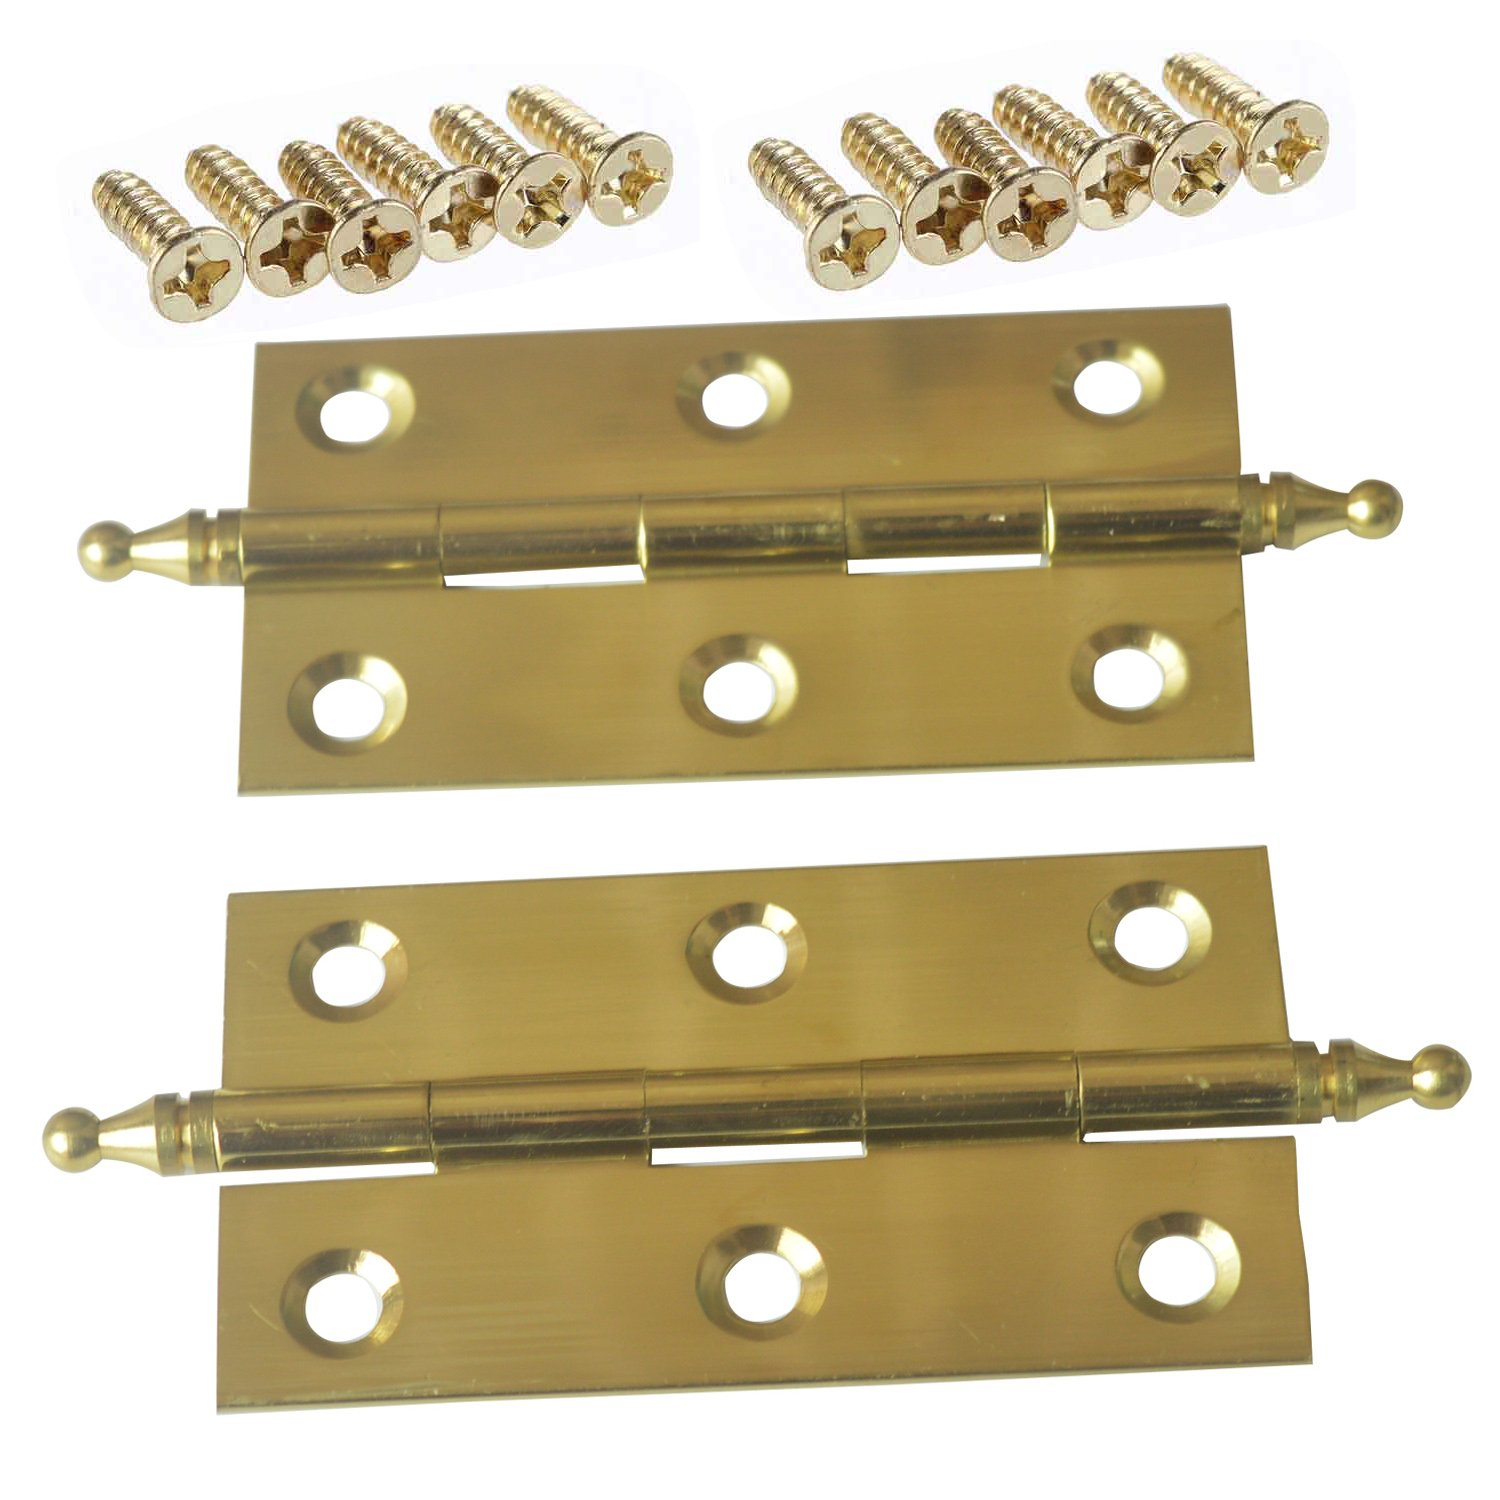 2.5 inch Pair of Solid Brass Butler Tray Hinge With Screws Satin Finish For Folding Tables - Gold